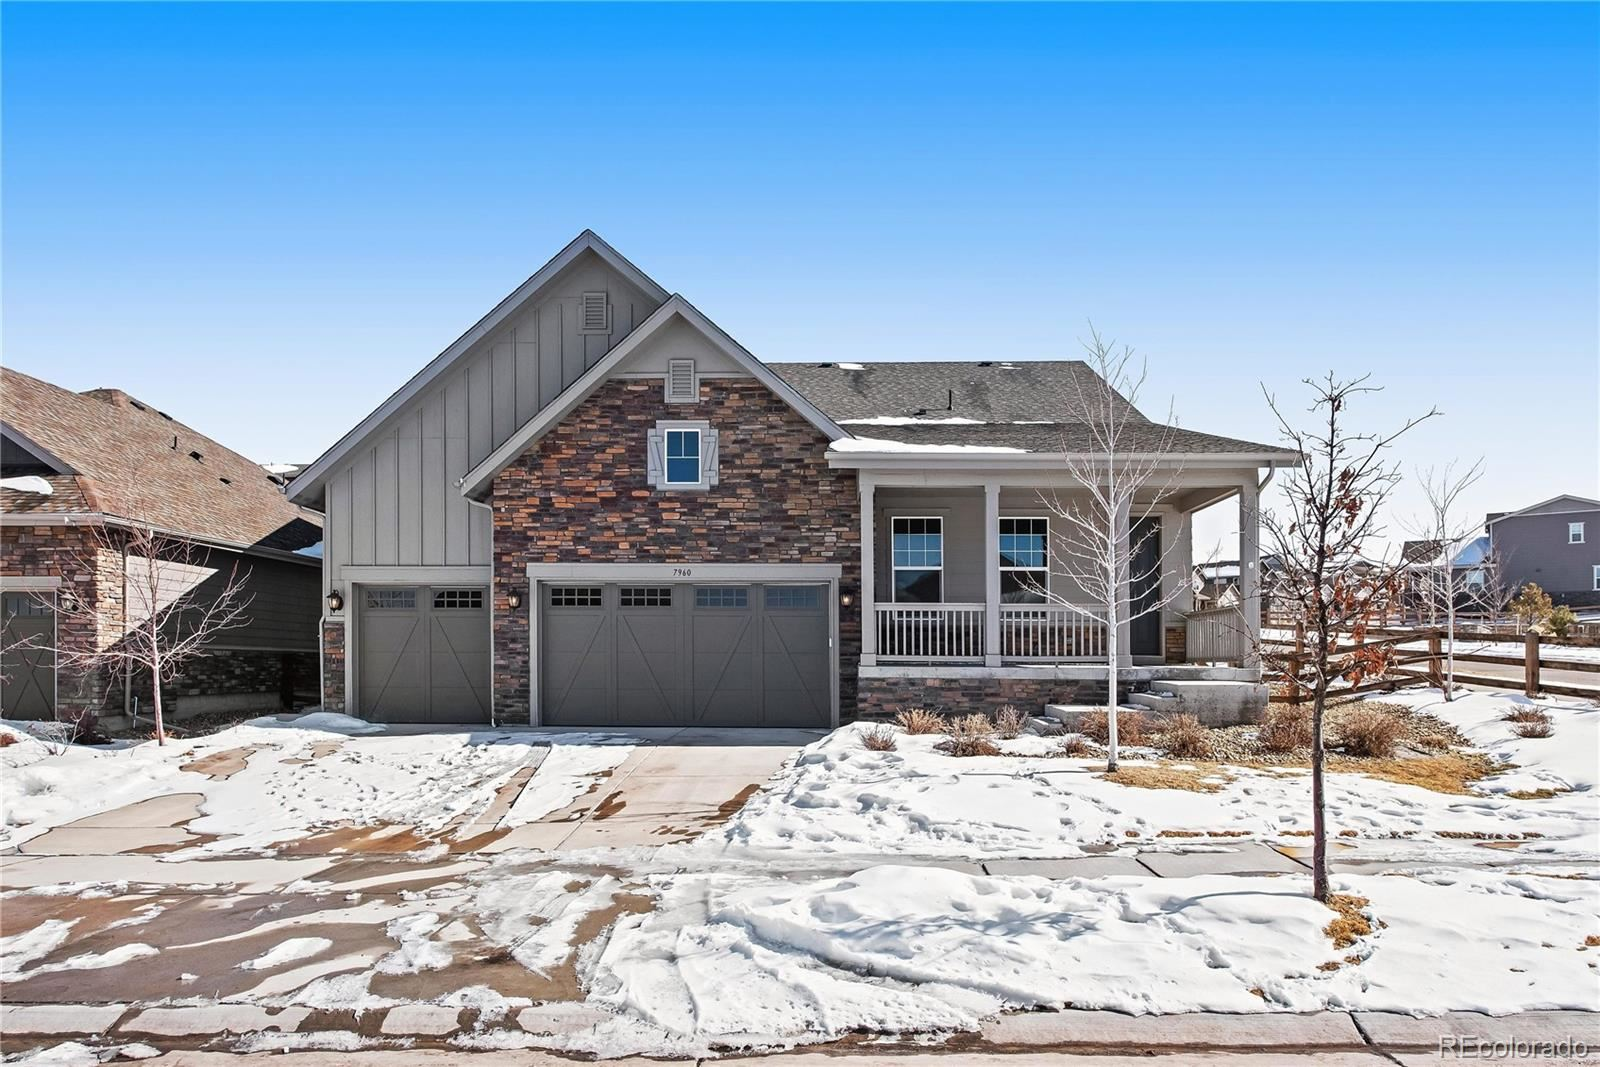 7960 S Flat Rock Way, Aurora, CO 80016 - #: 2020576